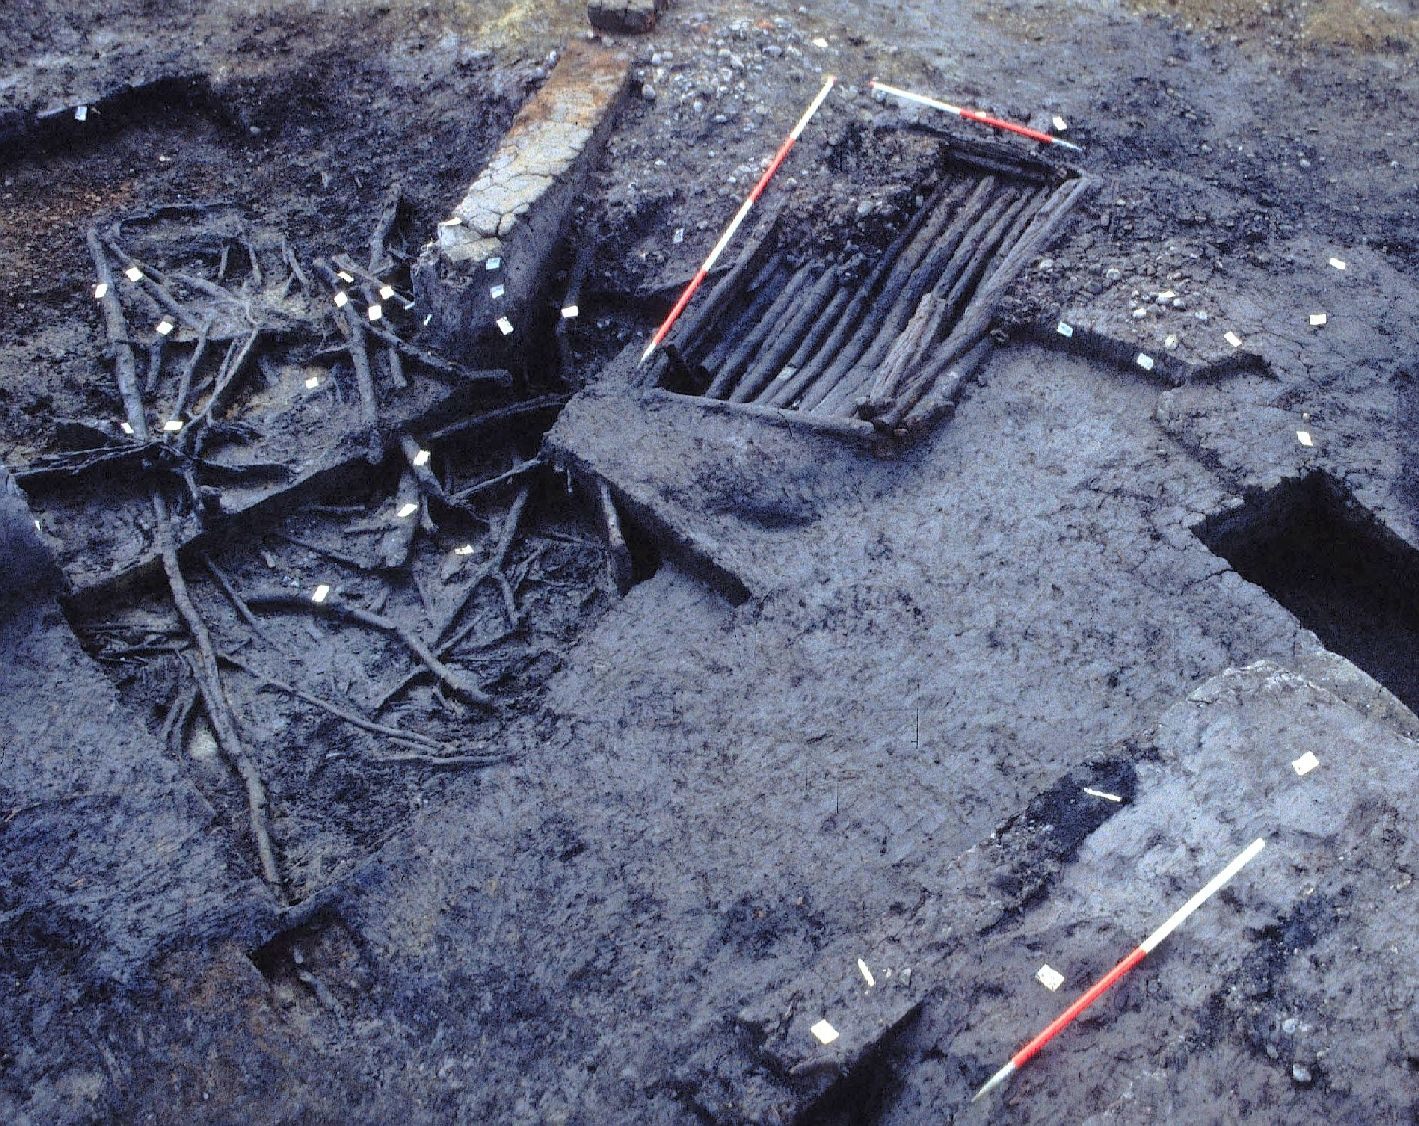 A photo of an archaeological excavation, showing very dark earth containing wooden structures and debris.